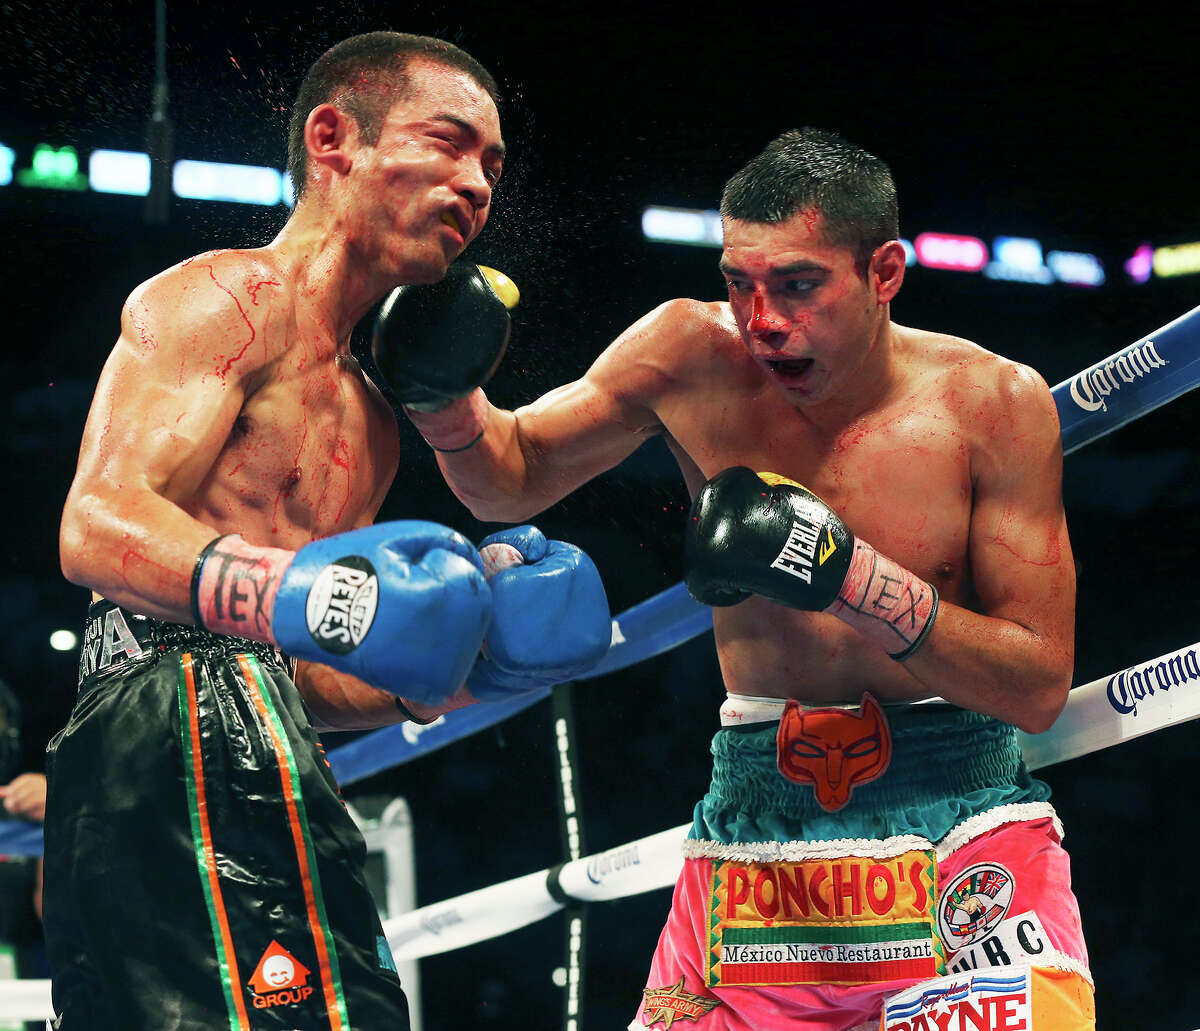 Omar Figueroa (right) battles Nihito Arakawa during the Knockout Kings II boxing card at the AT&T Center on July 27, 2013.